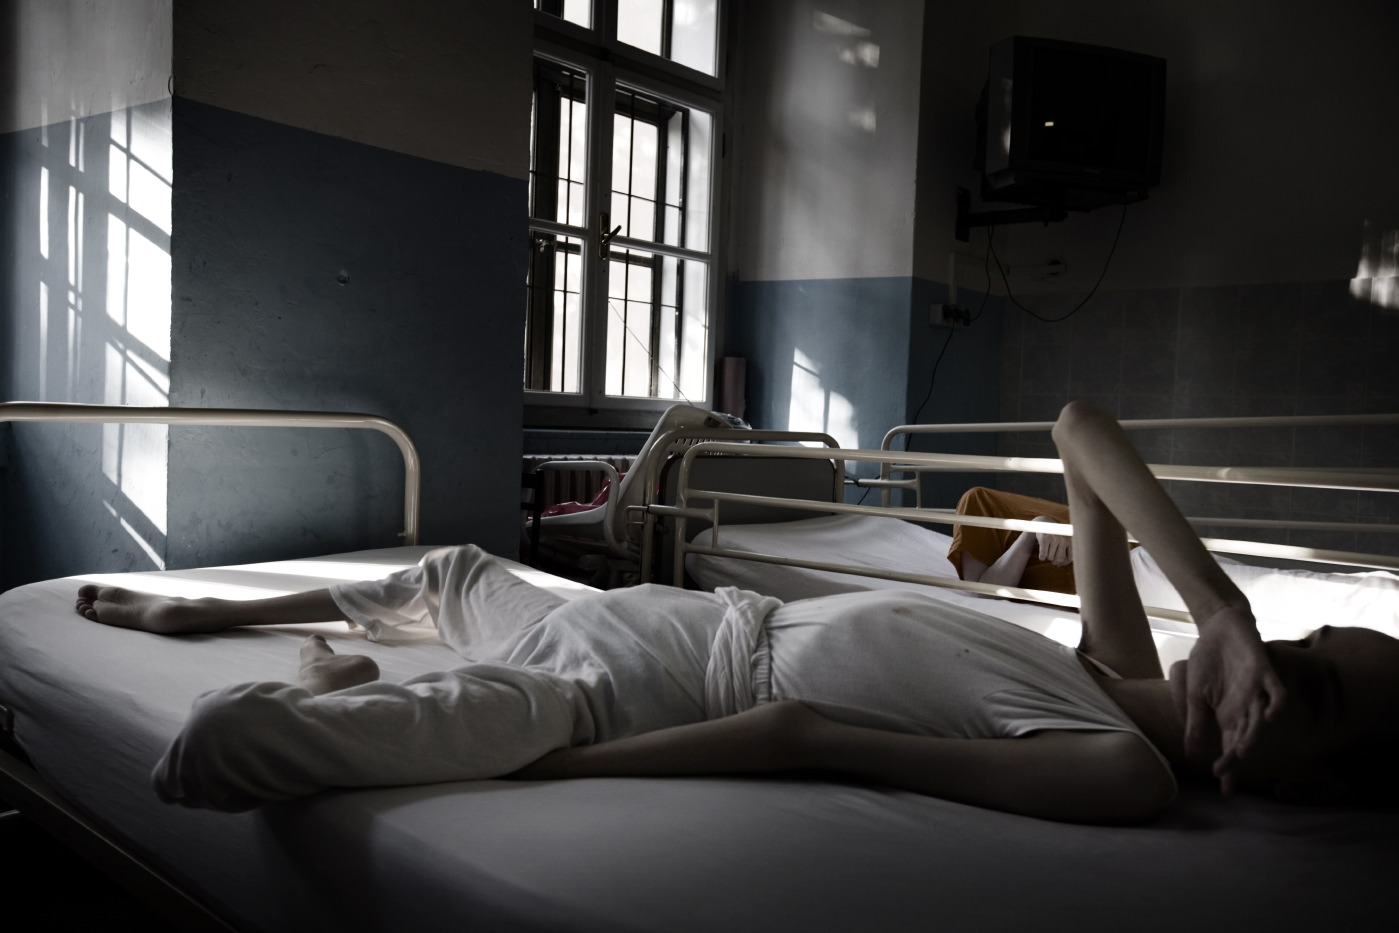 One of the rooms where the children, who are never allowed out of the building due to their precarious state of health, are hospitalized. Gornja Bistra, Croatia 2009. © Matteo Bastianelli